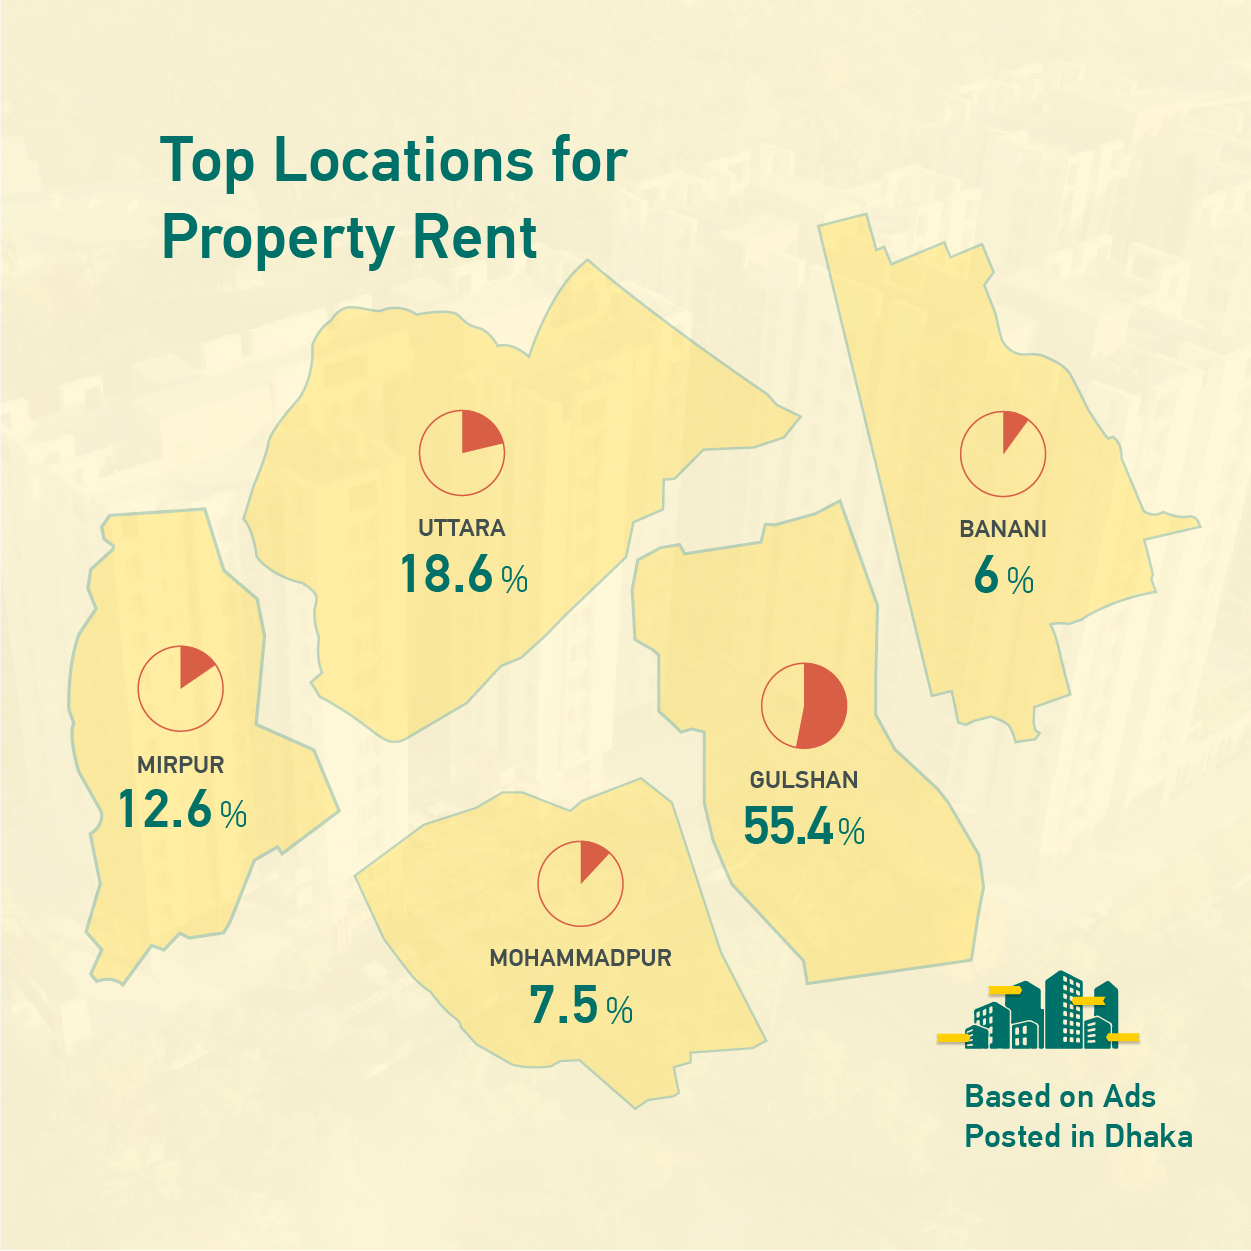 Top Locations for Property Rent in Dhaka